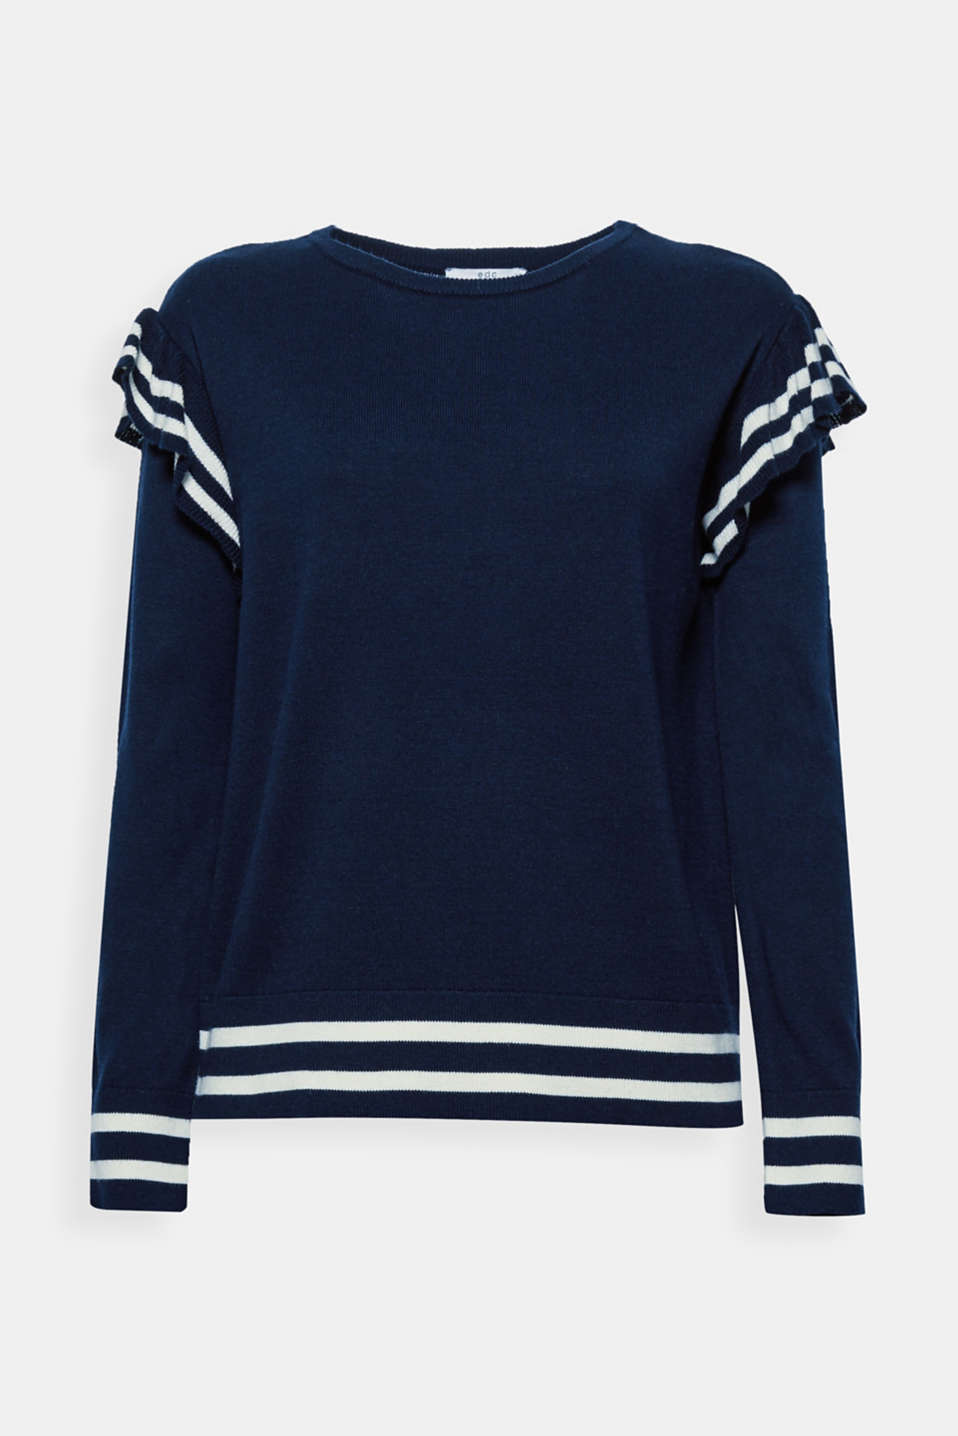 Playful head-turner! This casual fine knit jumper features frills and a nautical look.